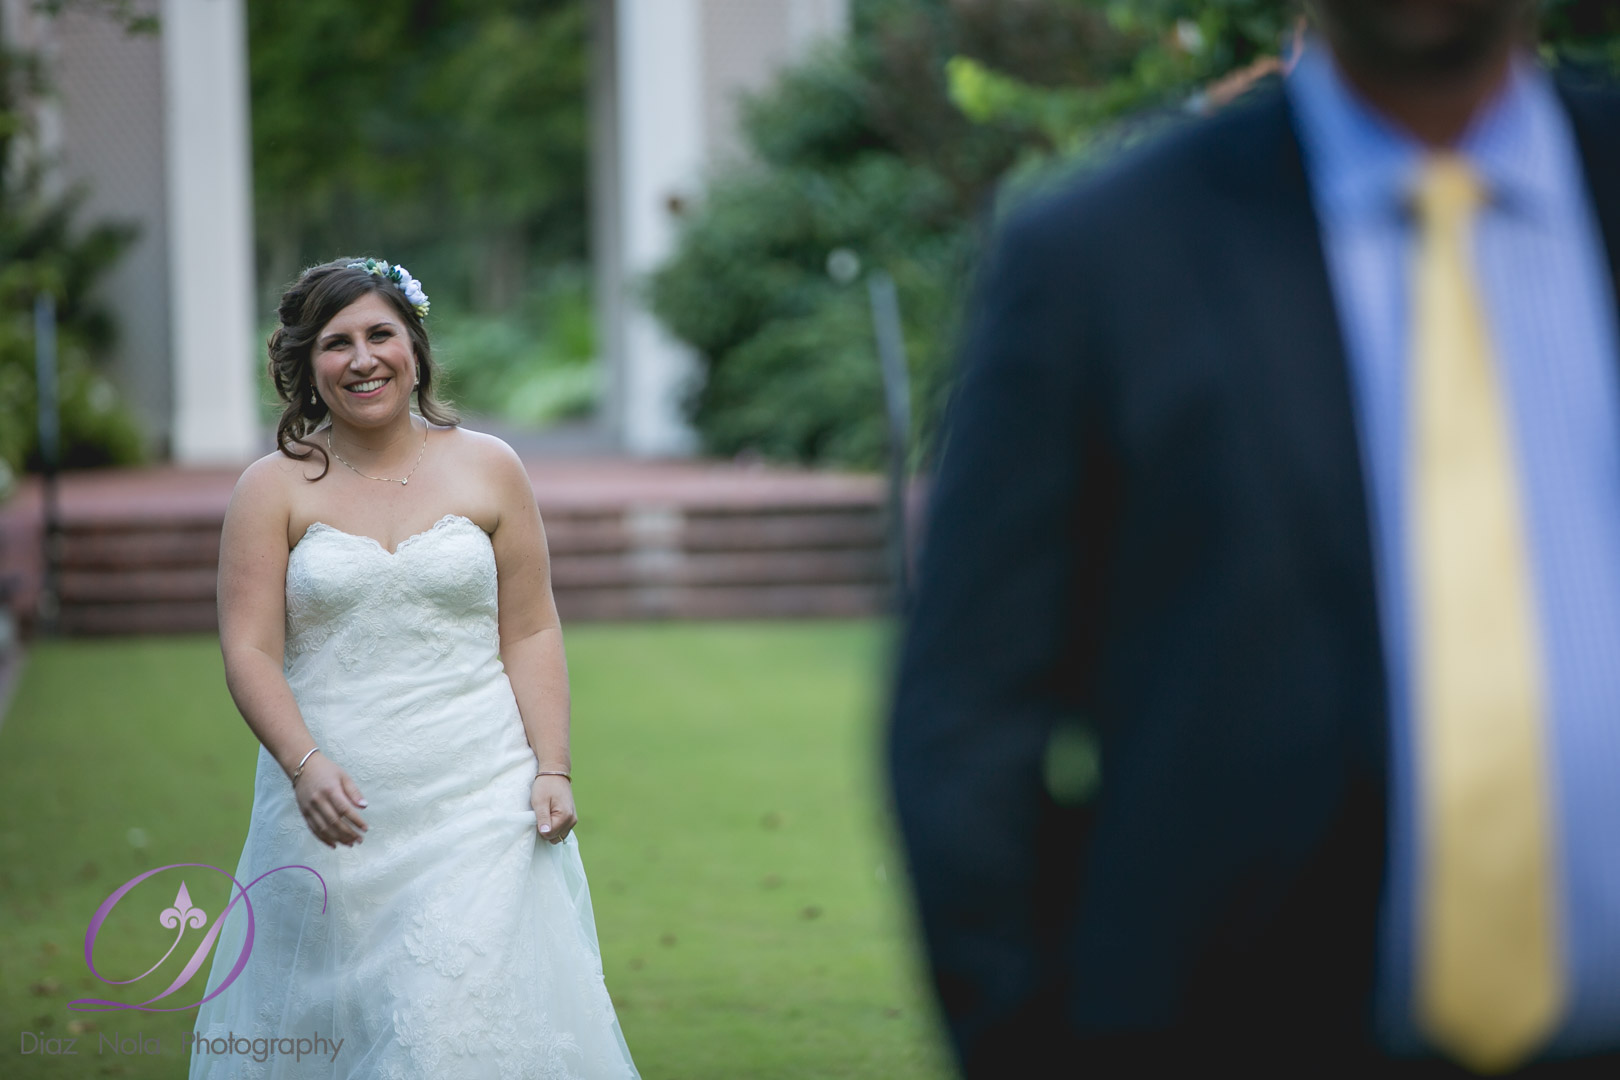 amanda-james-new-orleans-botanical-garden-wedding-4551-249